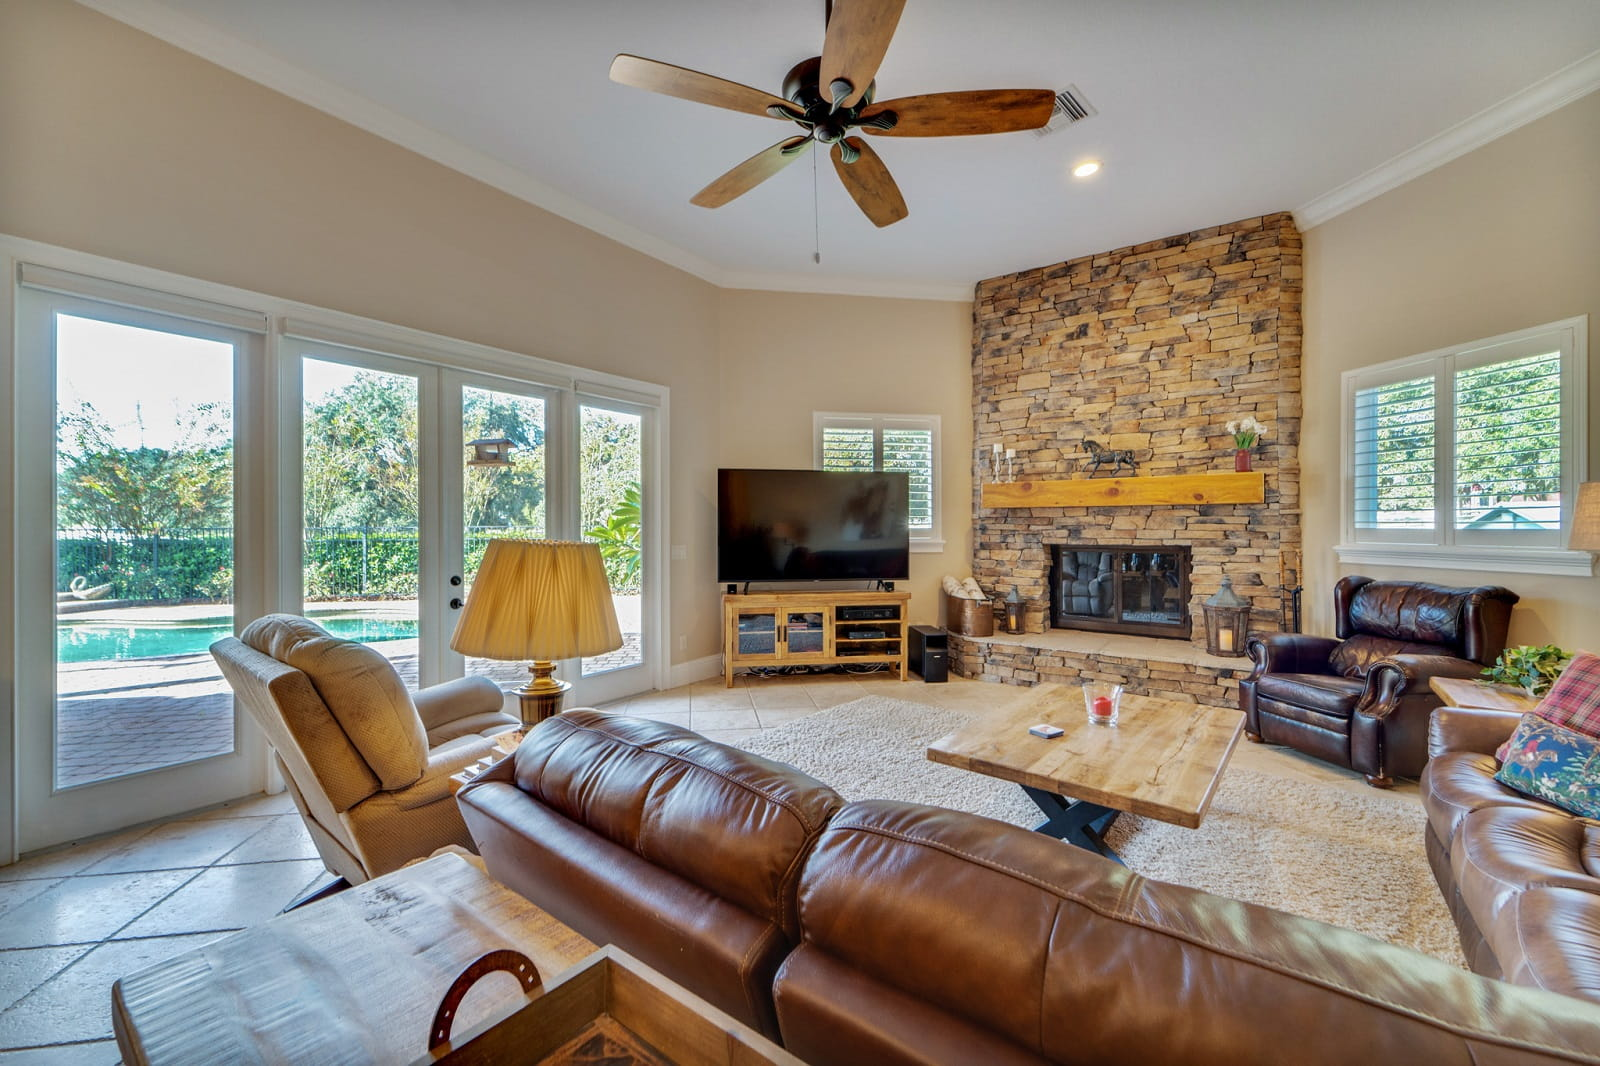 Real Estate Photography in Apopka - FL - USA - Living Area View